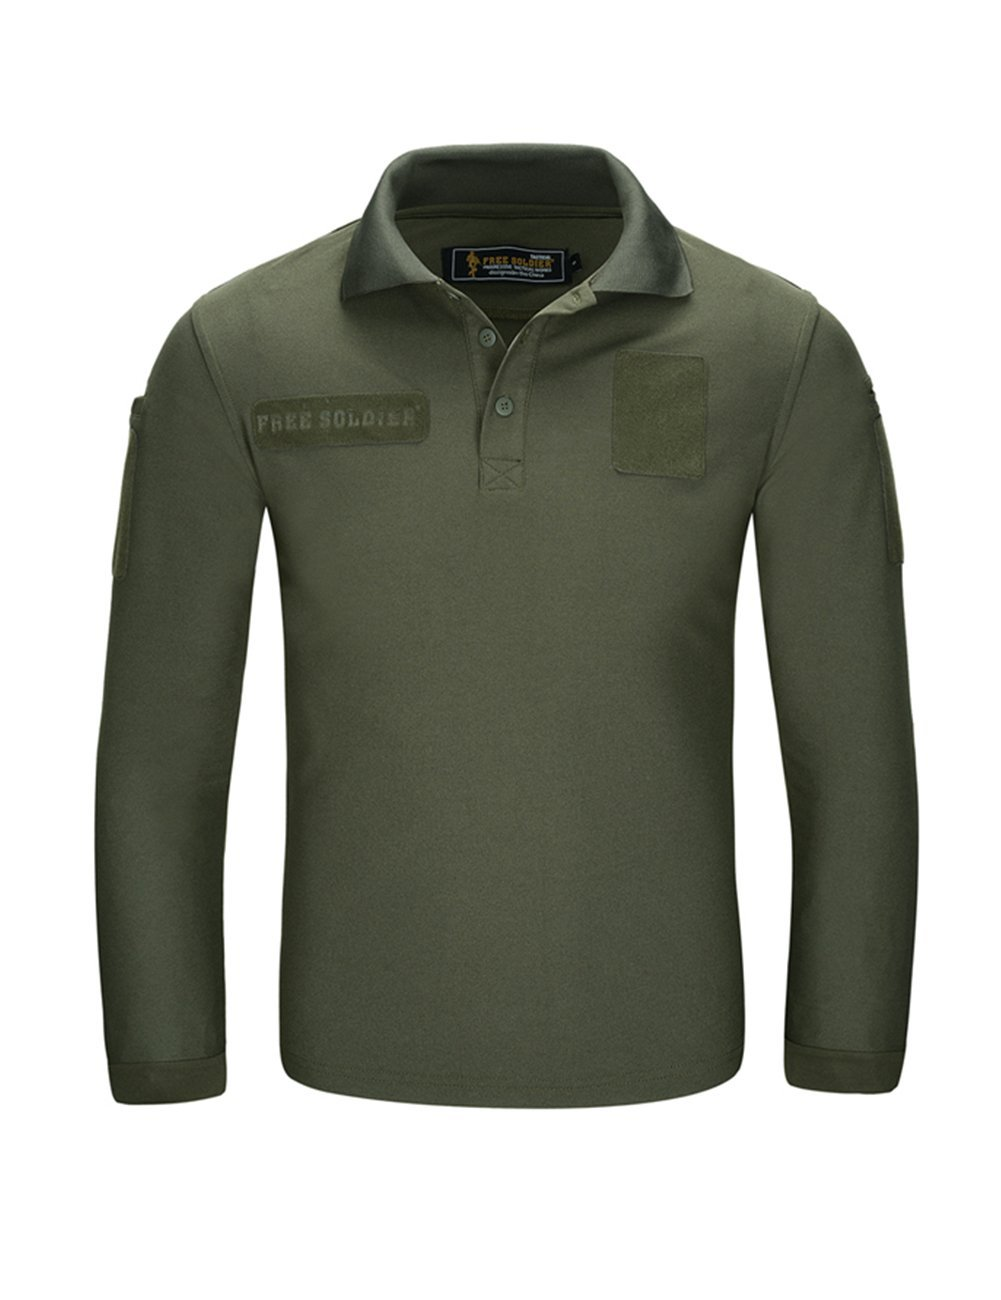 3ed8c99a7b53 Get Quotations · FREE SOLDIER Men s Long Sleeve Polo Shirt Breathable  Coolmax Tactical Polo